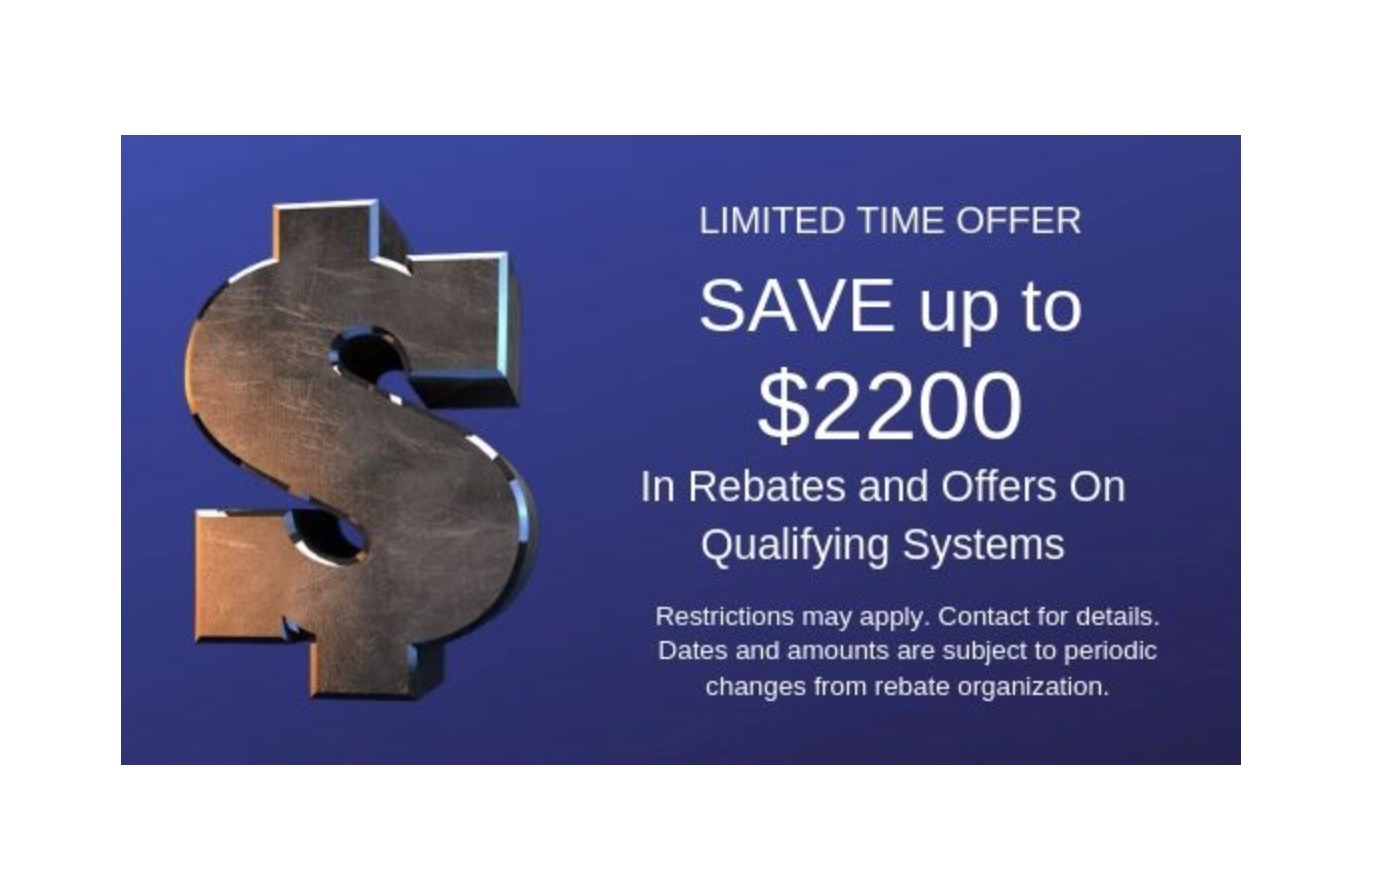 Save up to $2200 on a new AC and Furnace Restrictions Apply. Call K & J Heating and Cooling for details.